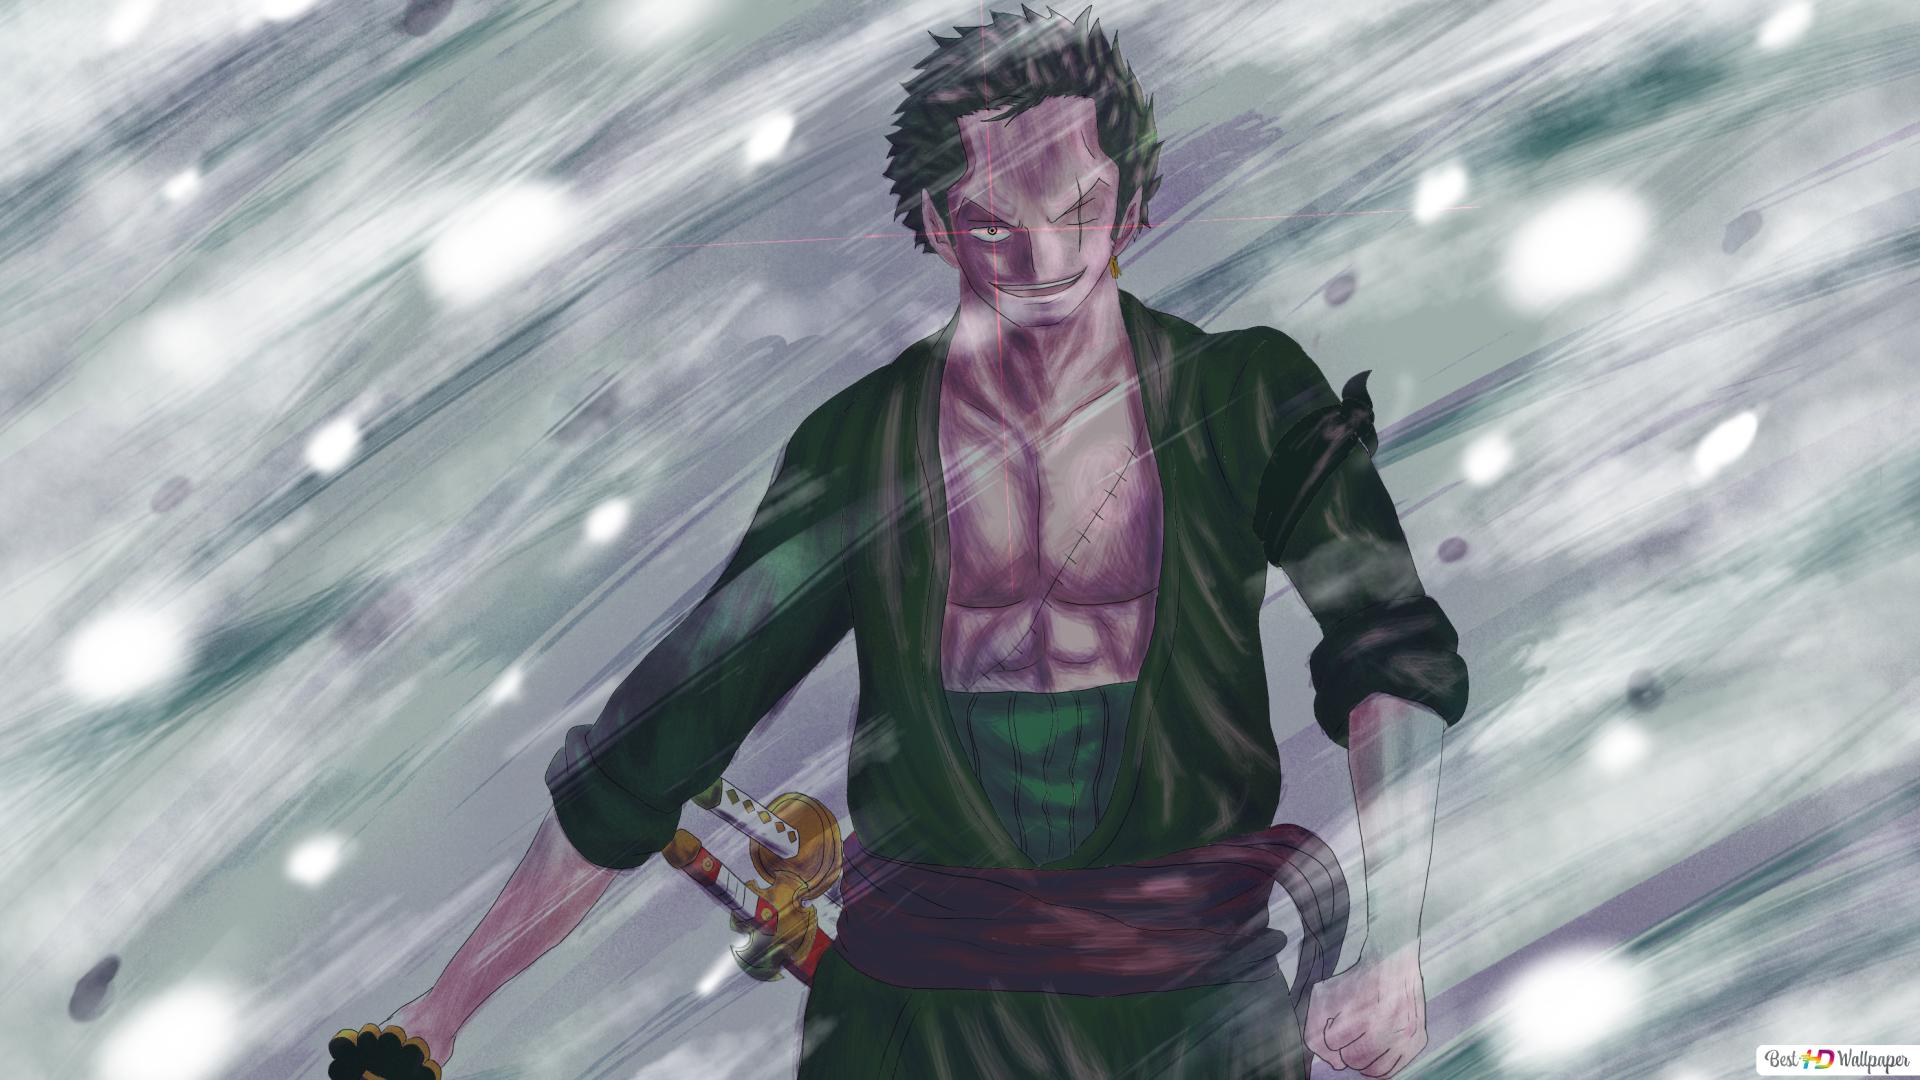 One Piece Zoro Roronoa Hd Wallpaper Download